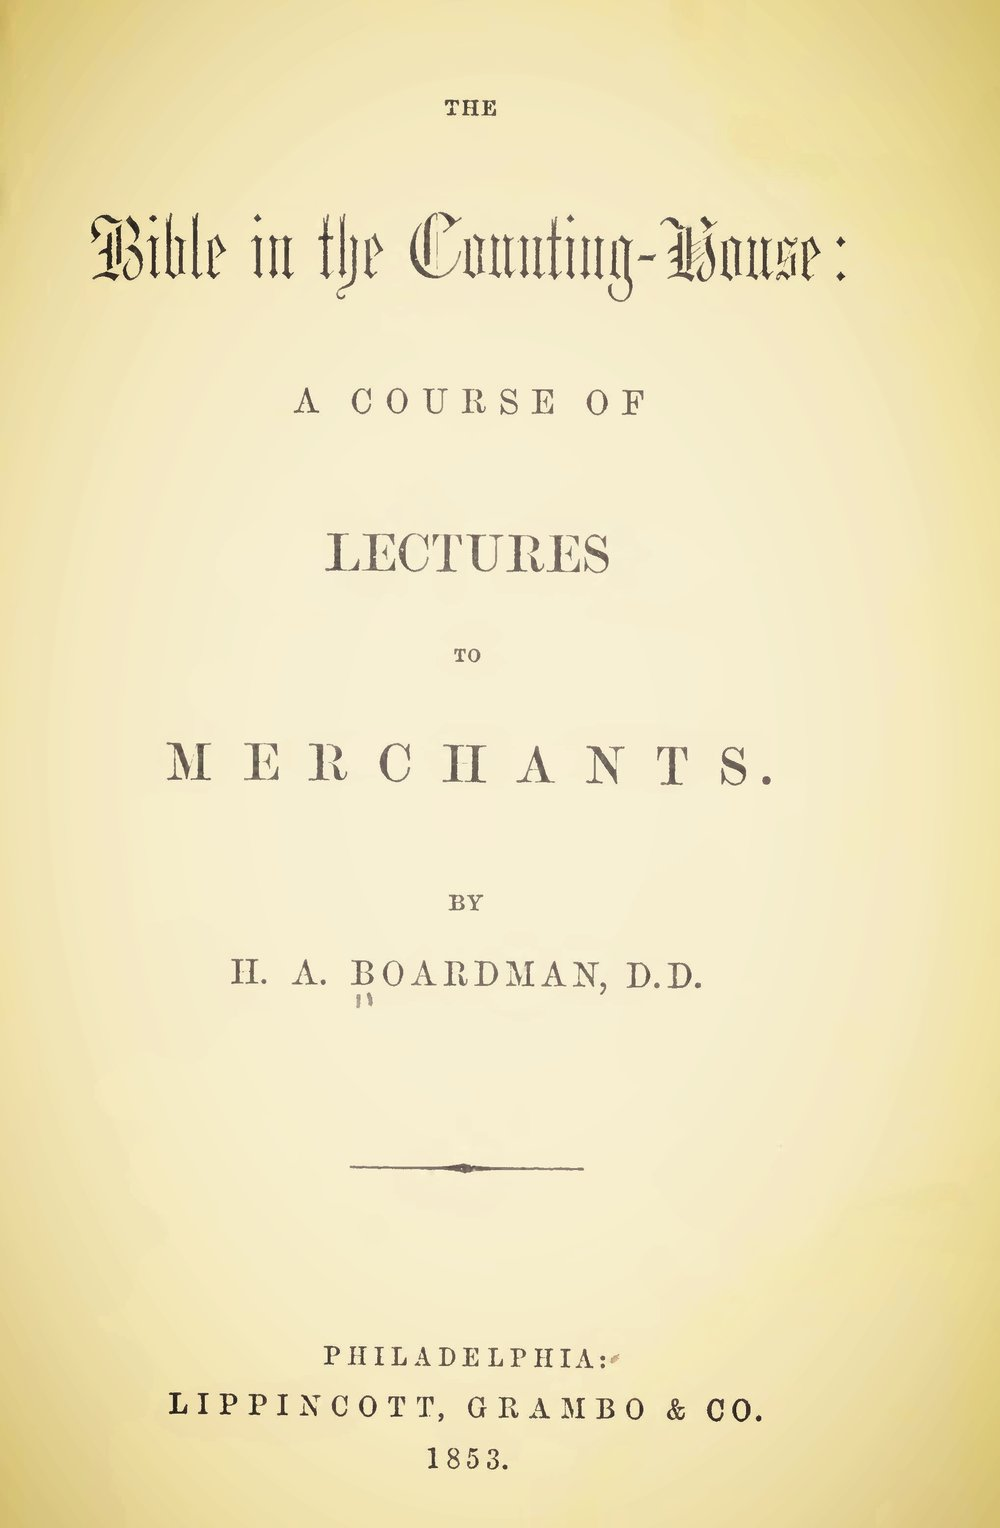 Boardman, Henry Augustus, The Bible in the Counting-House Title Page.jpg